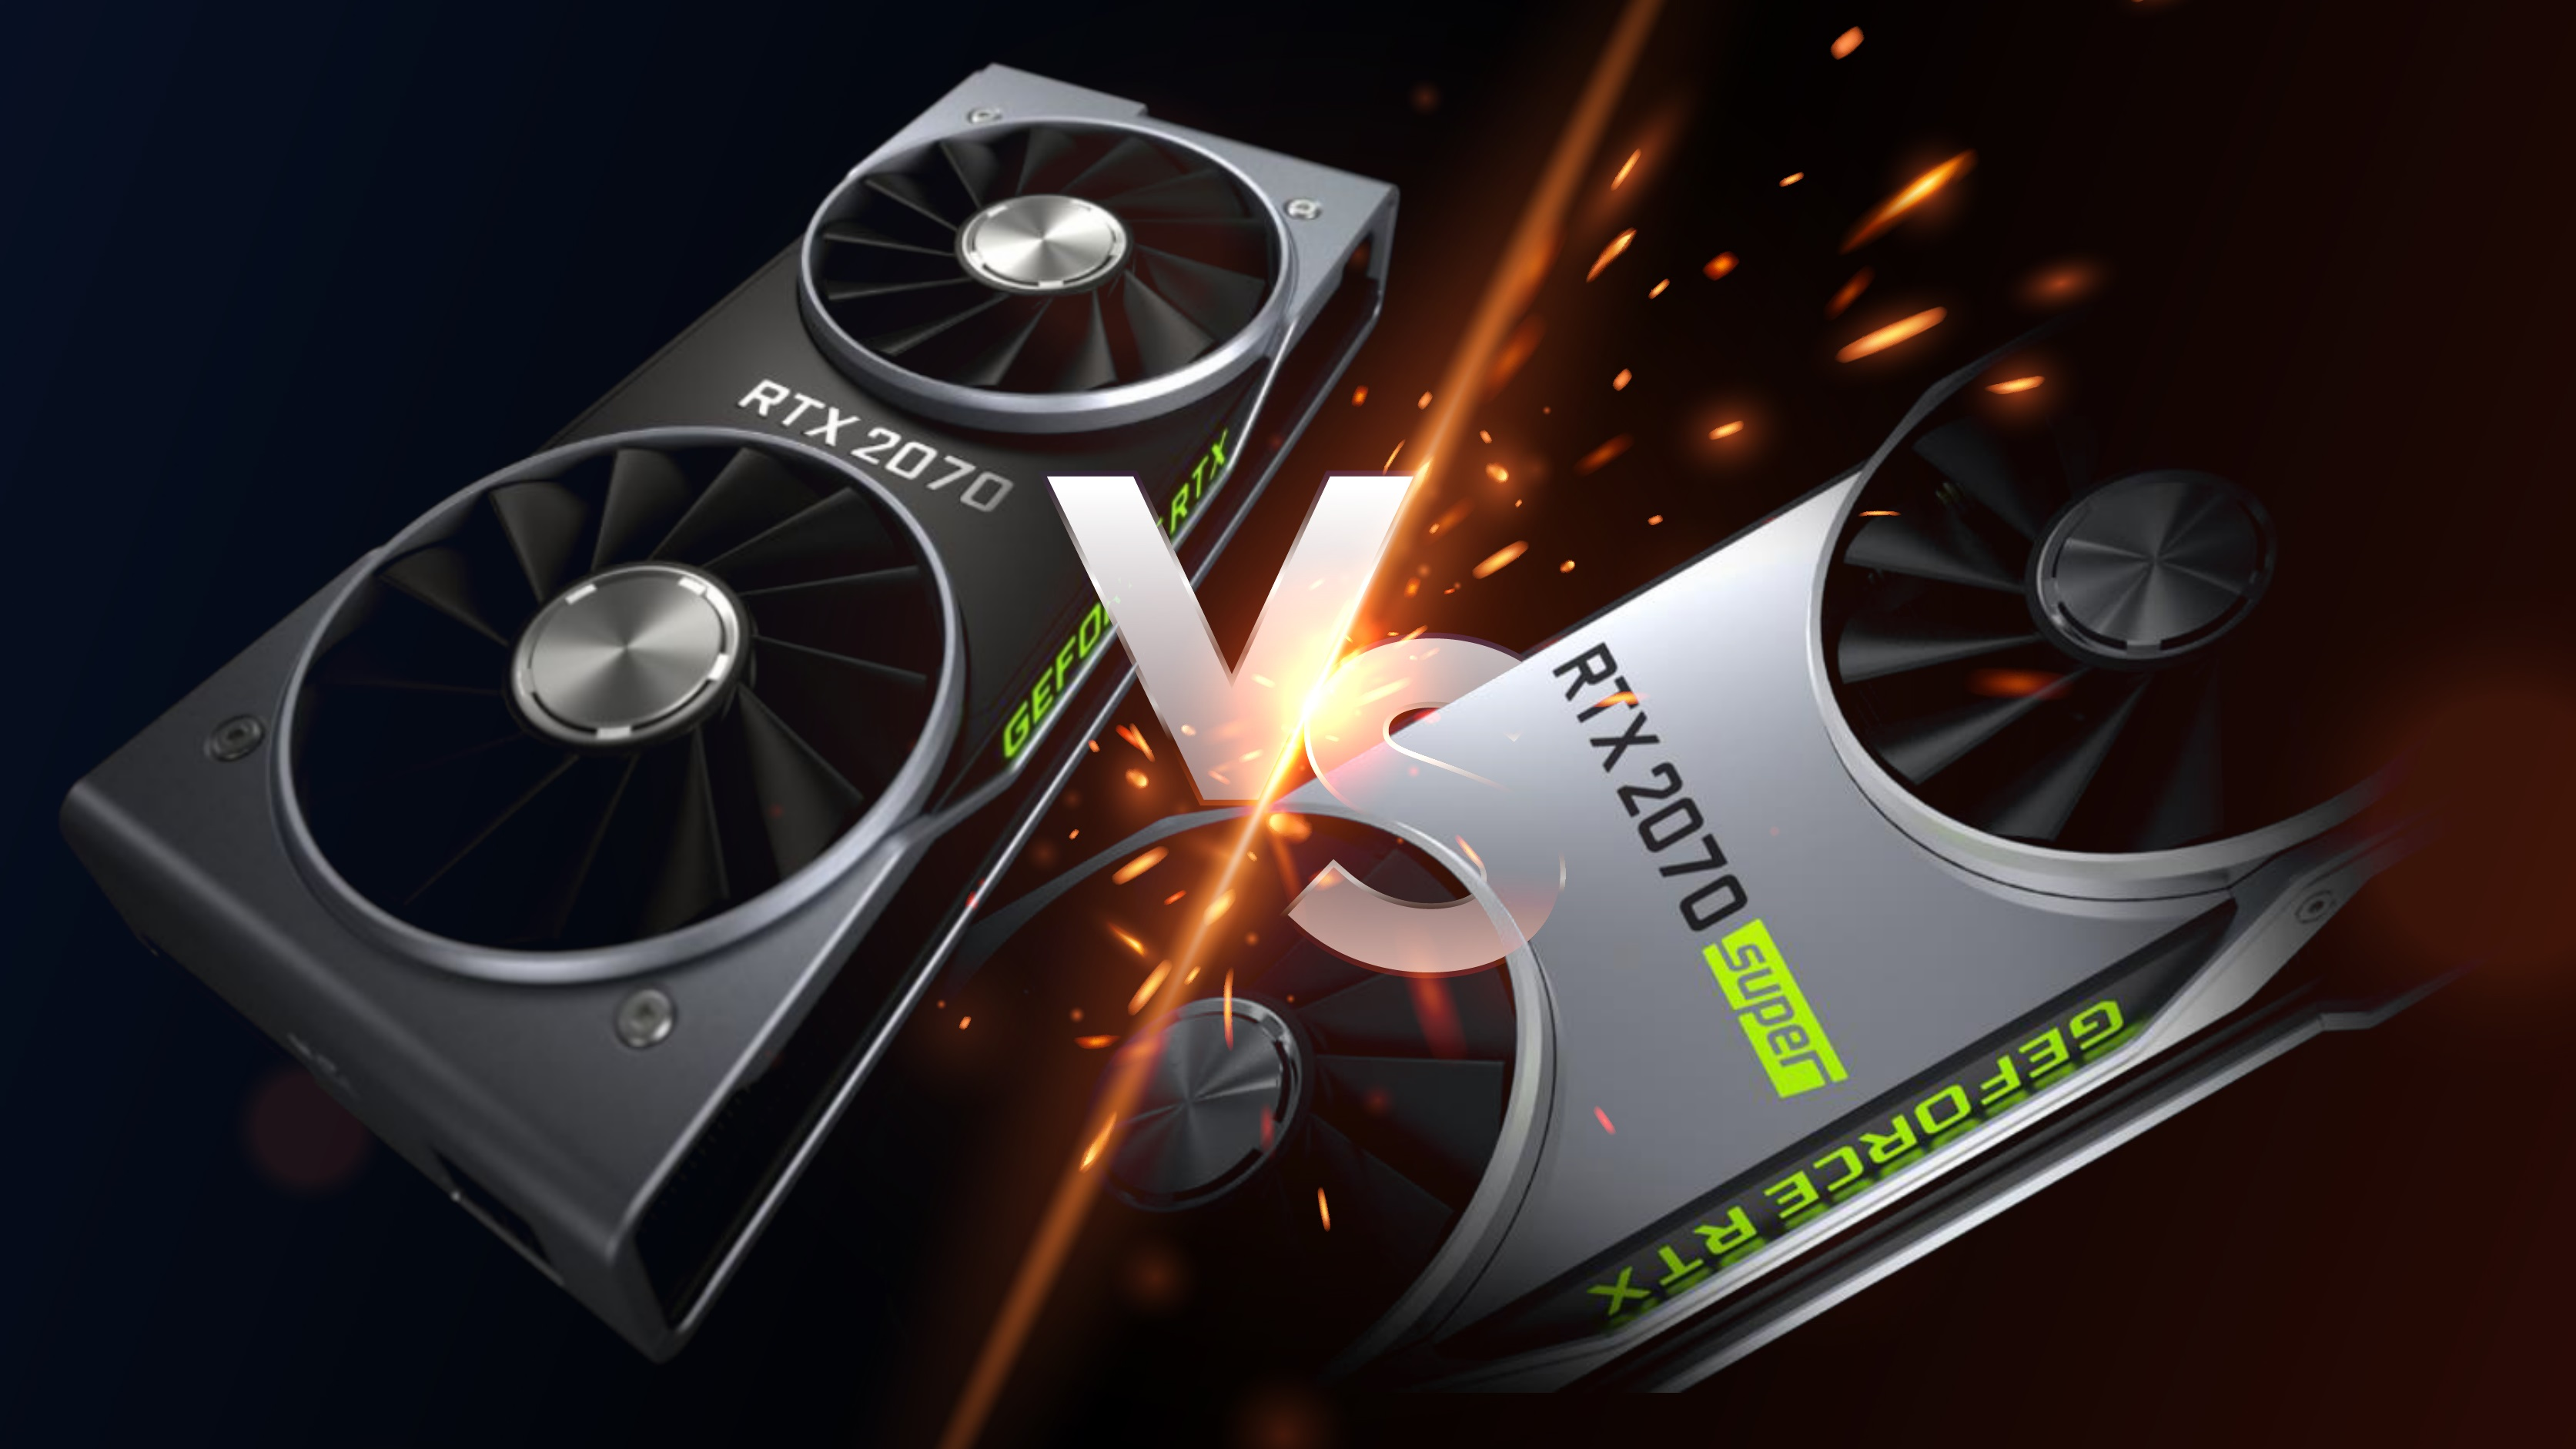 KVE3mdLJAszXiRiuDoap7Q - The state of Nvidia Turing: is RTX worth it?